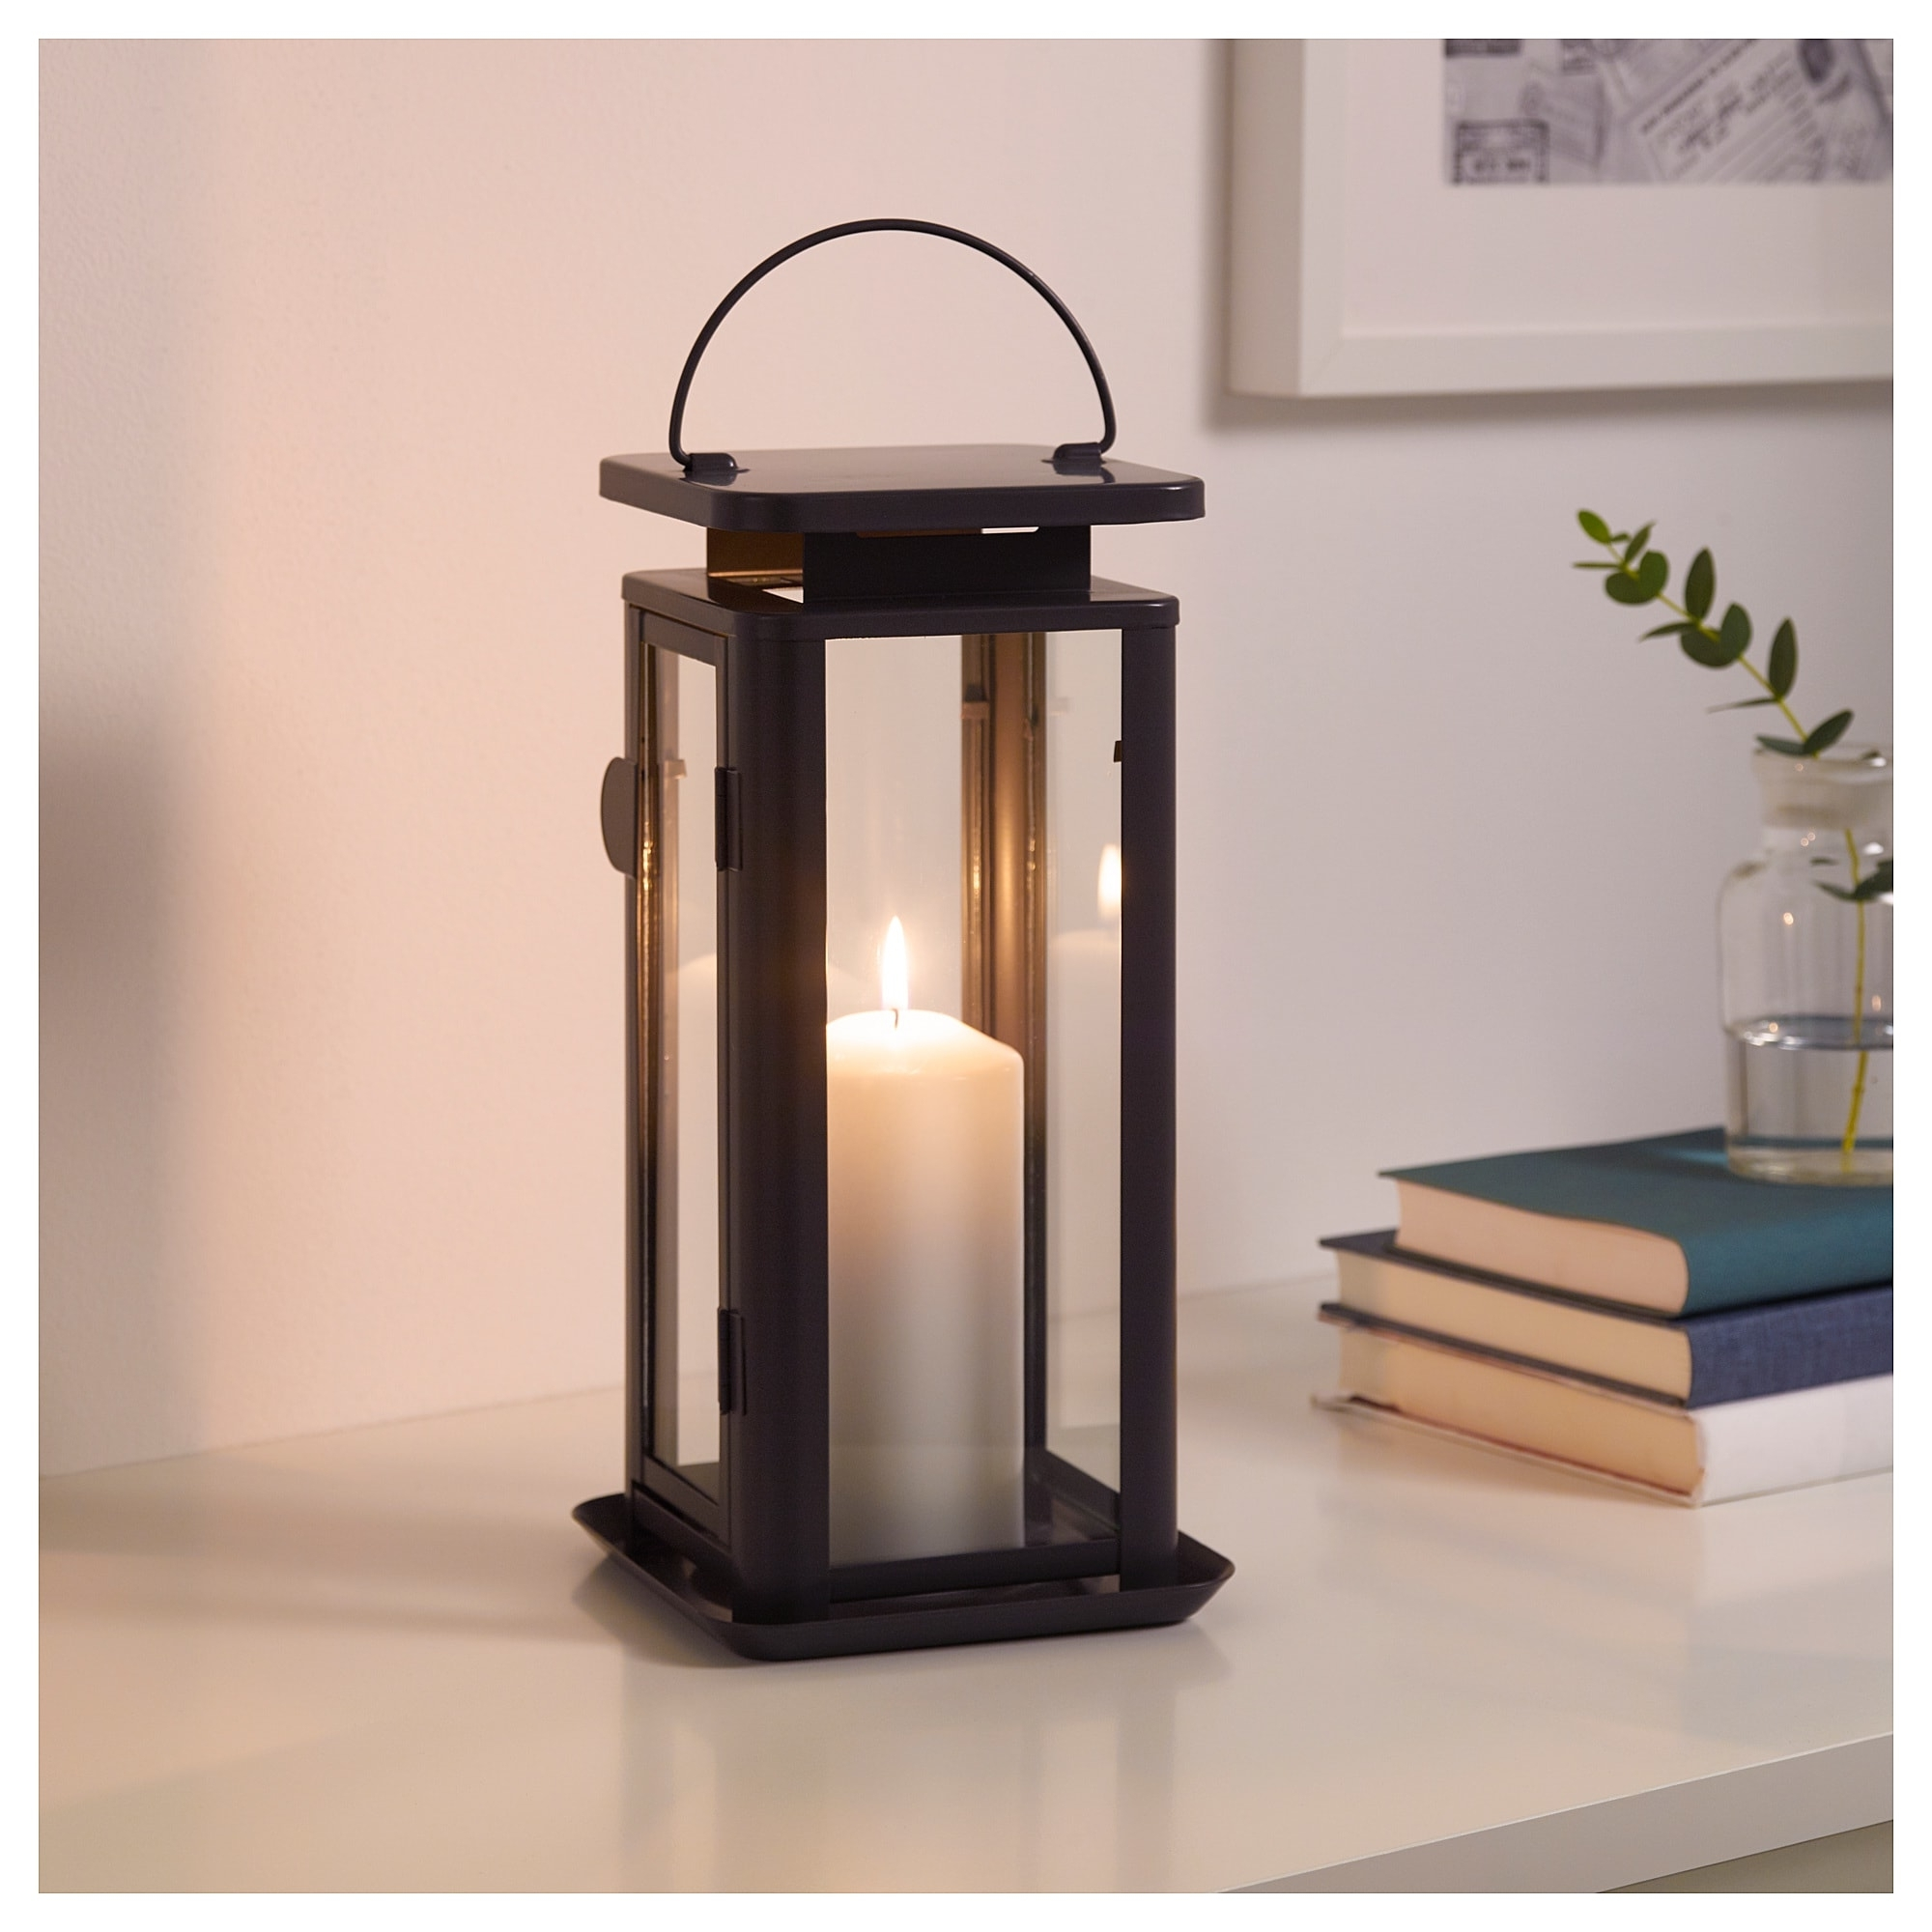 Sinnesro Lantern F Block Candle, In/outdoor Grey 29 Cm – Ikea With Regard To Most Up To Date Outdoor Grey Lanterns (View 17 of 20)